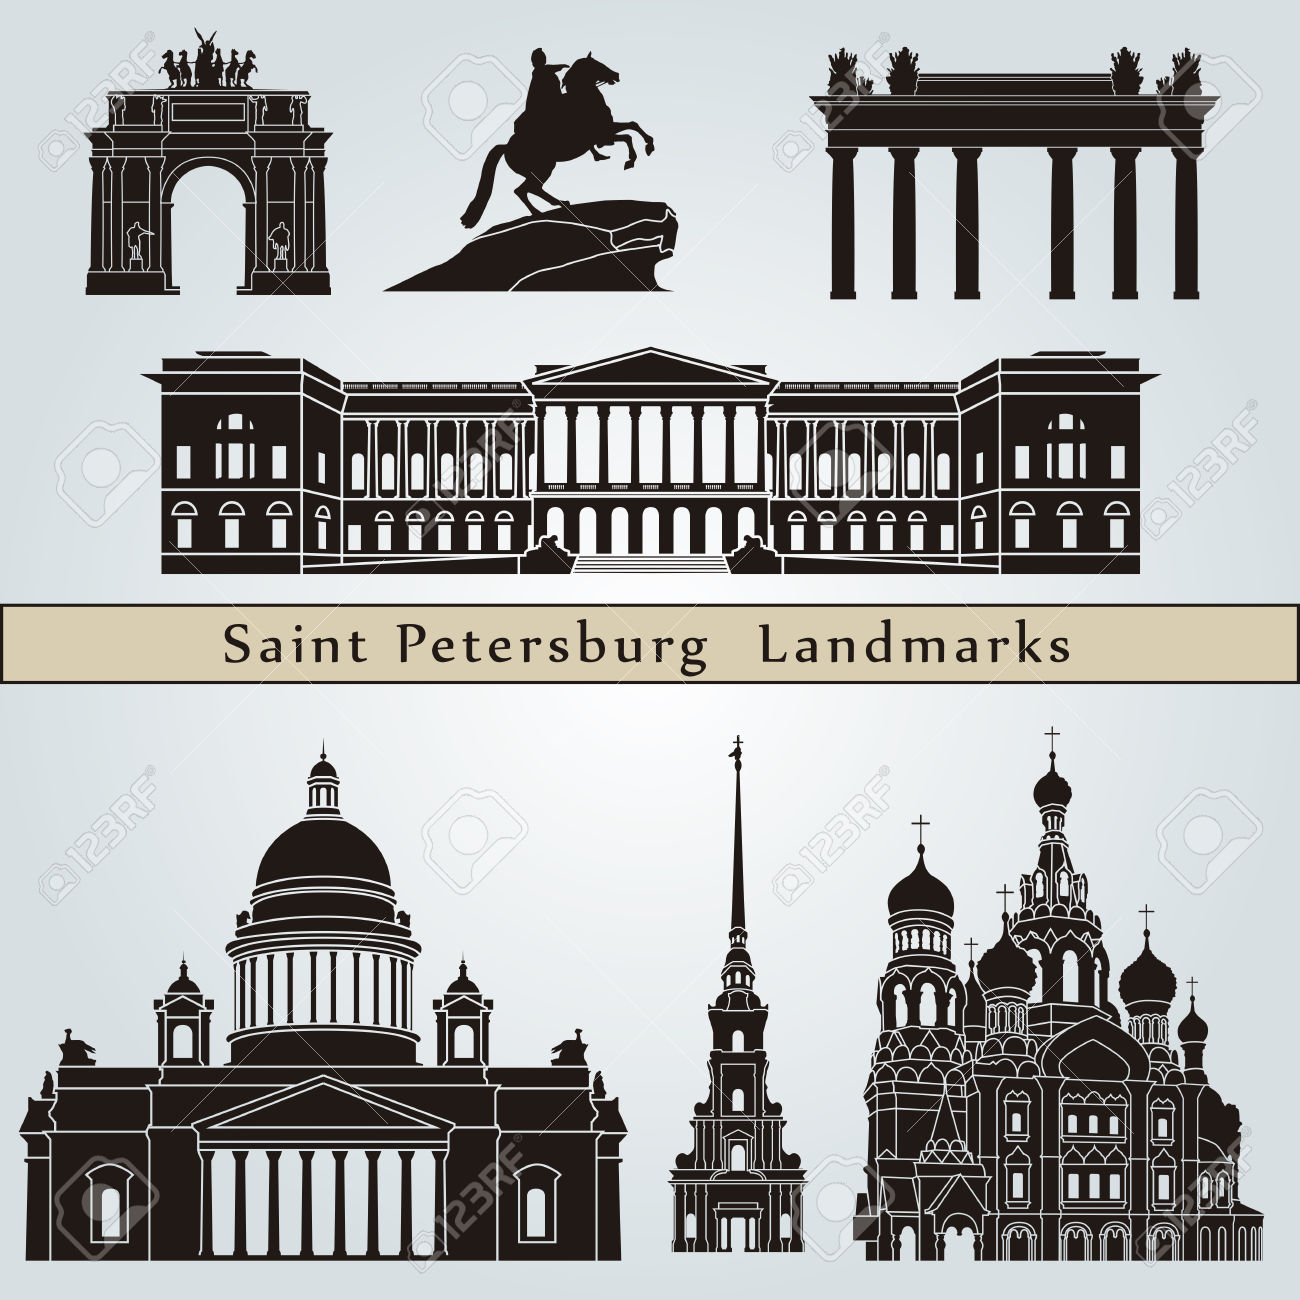 790 Saint Petersburg Cliparts, Stock Vector And Royalty Free Saint.